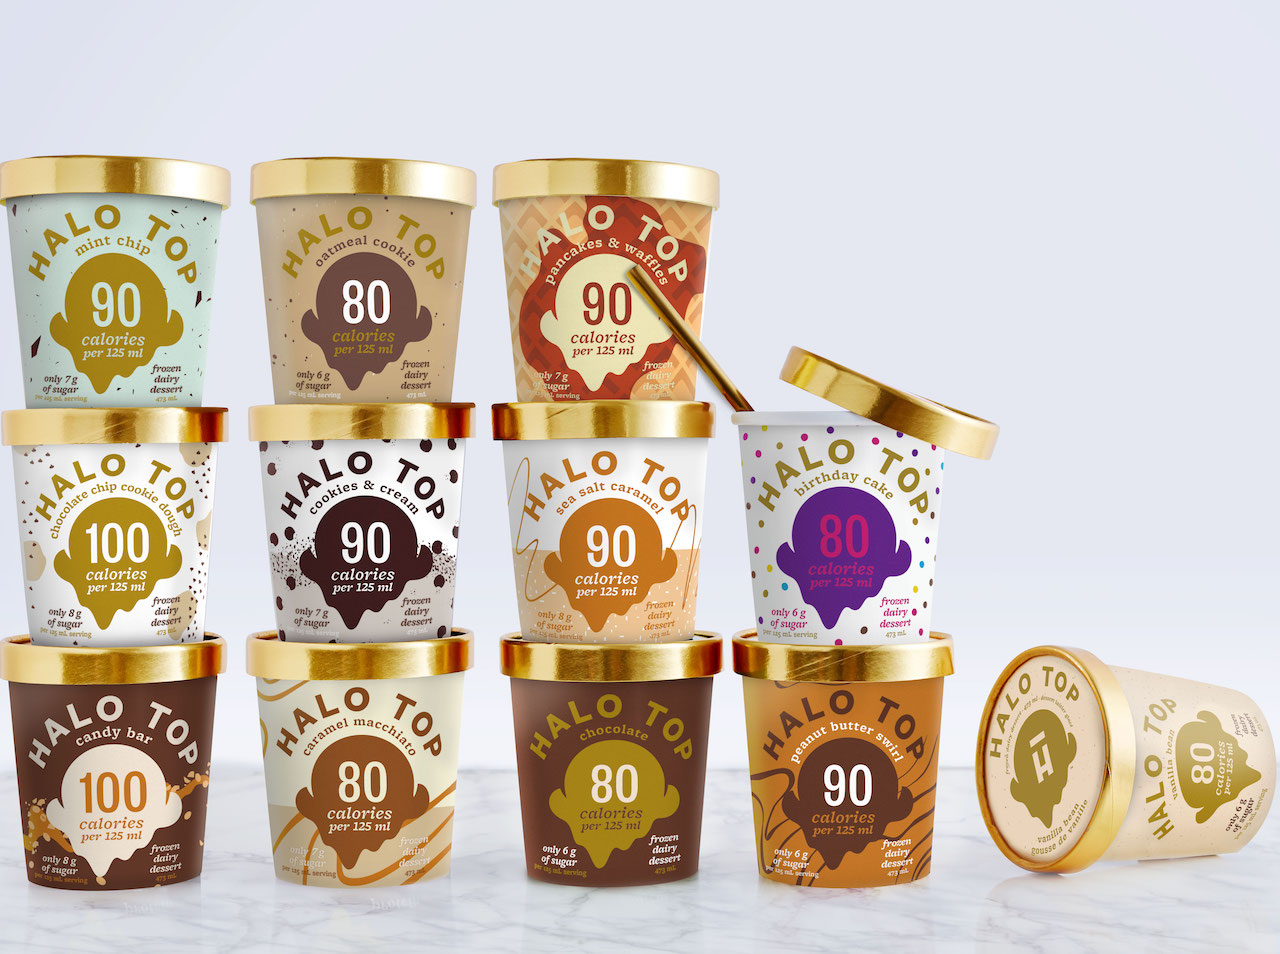 Halo Top Ice Cream Has Arrived In Canada.